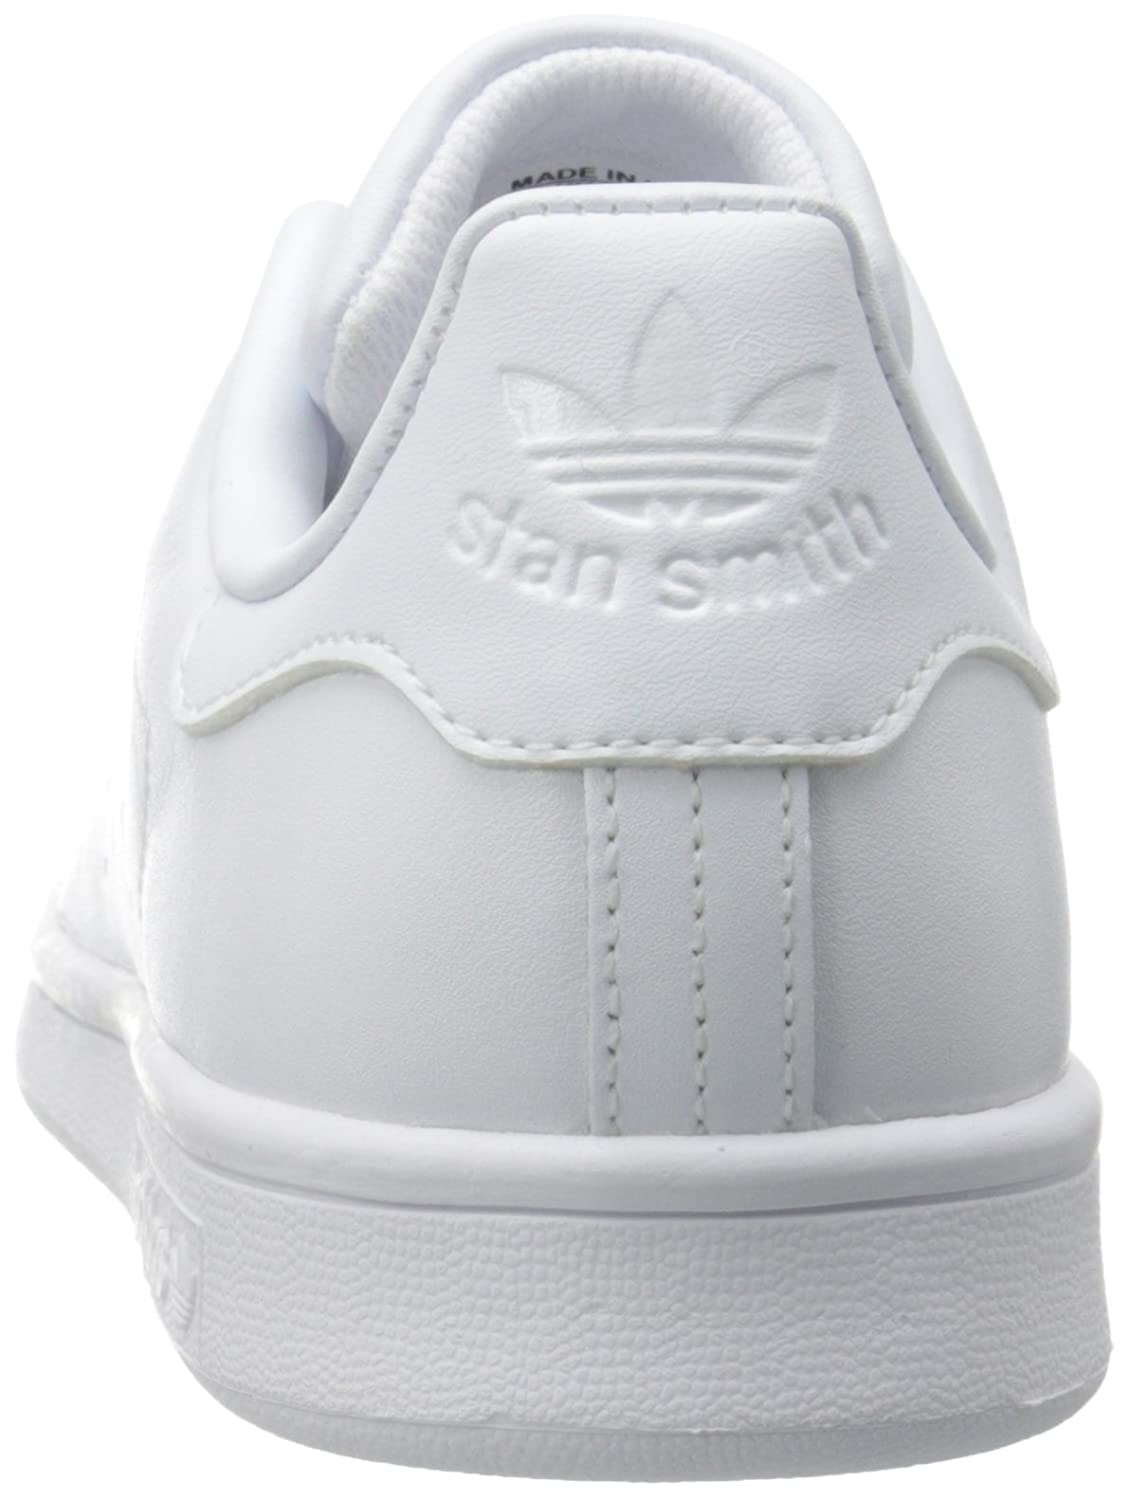 11e0884a0fc538 adidas Originals Unisex Adults  Stan Smith Low-Top Trainer  Amazon.co.uk   Shoes   Bags